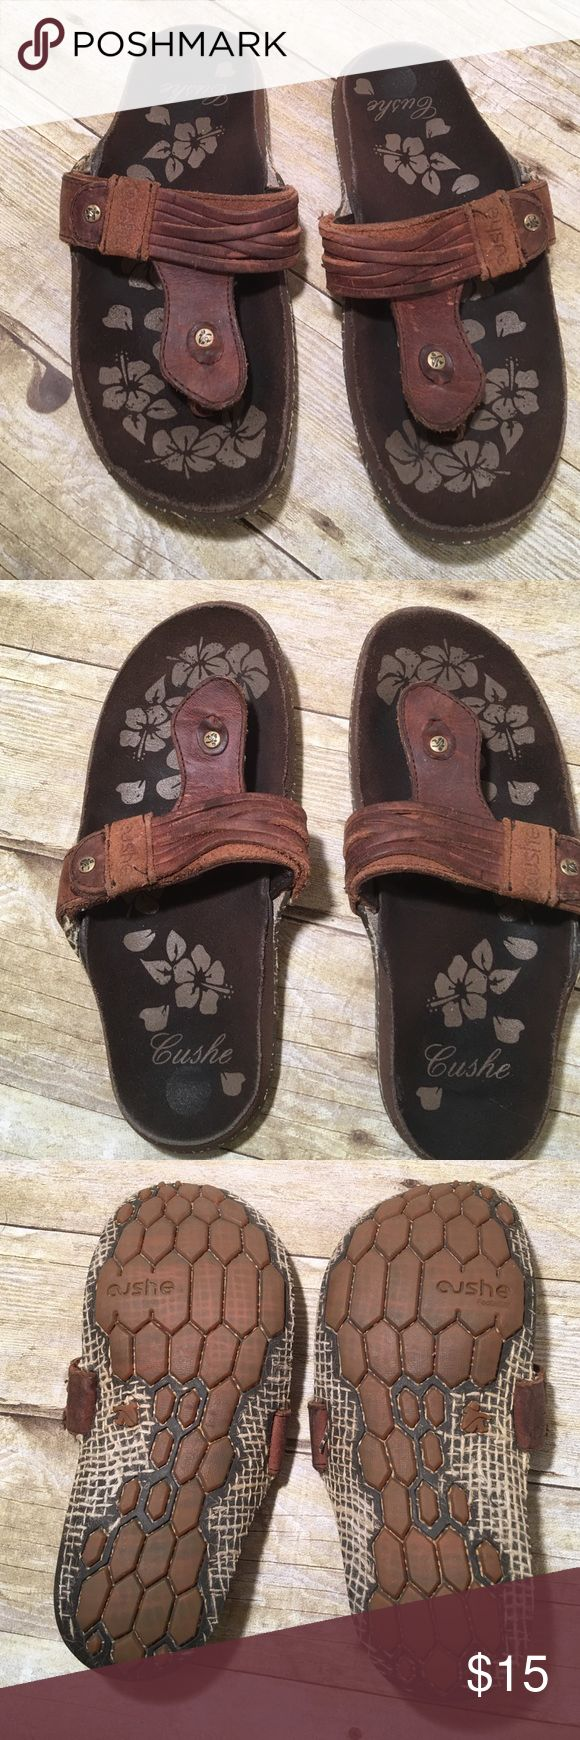 Cushe Manuka Strip Brown Leather Sandals Great pair of comfy sandals. Great non slip sole. In very good condition and comes from my non smoking home Cushe Shoes Sandals